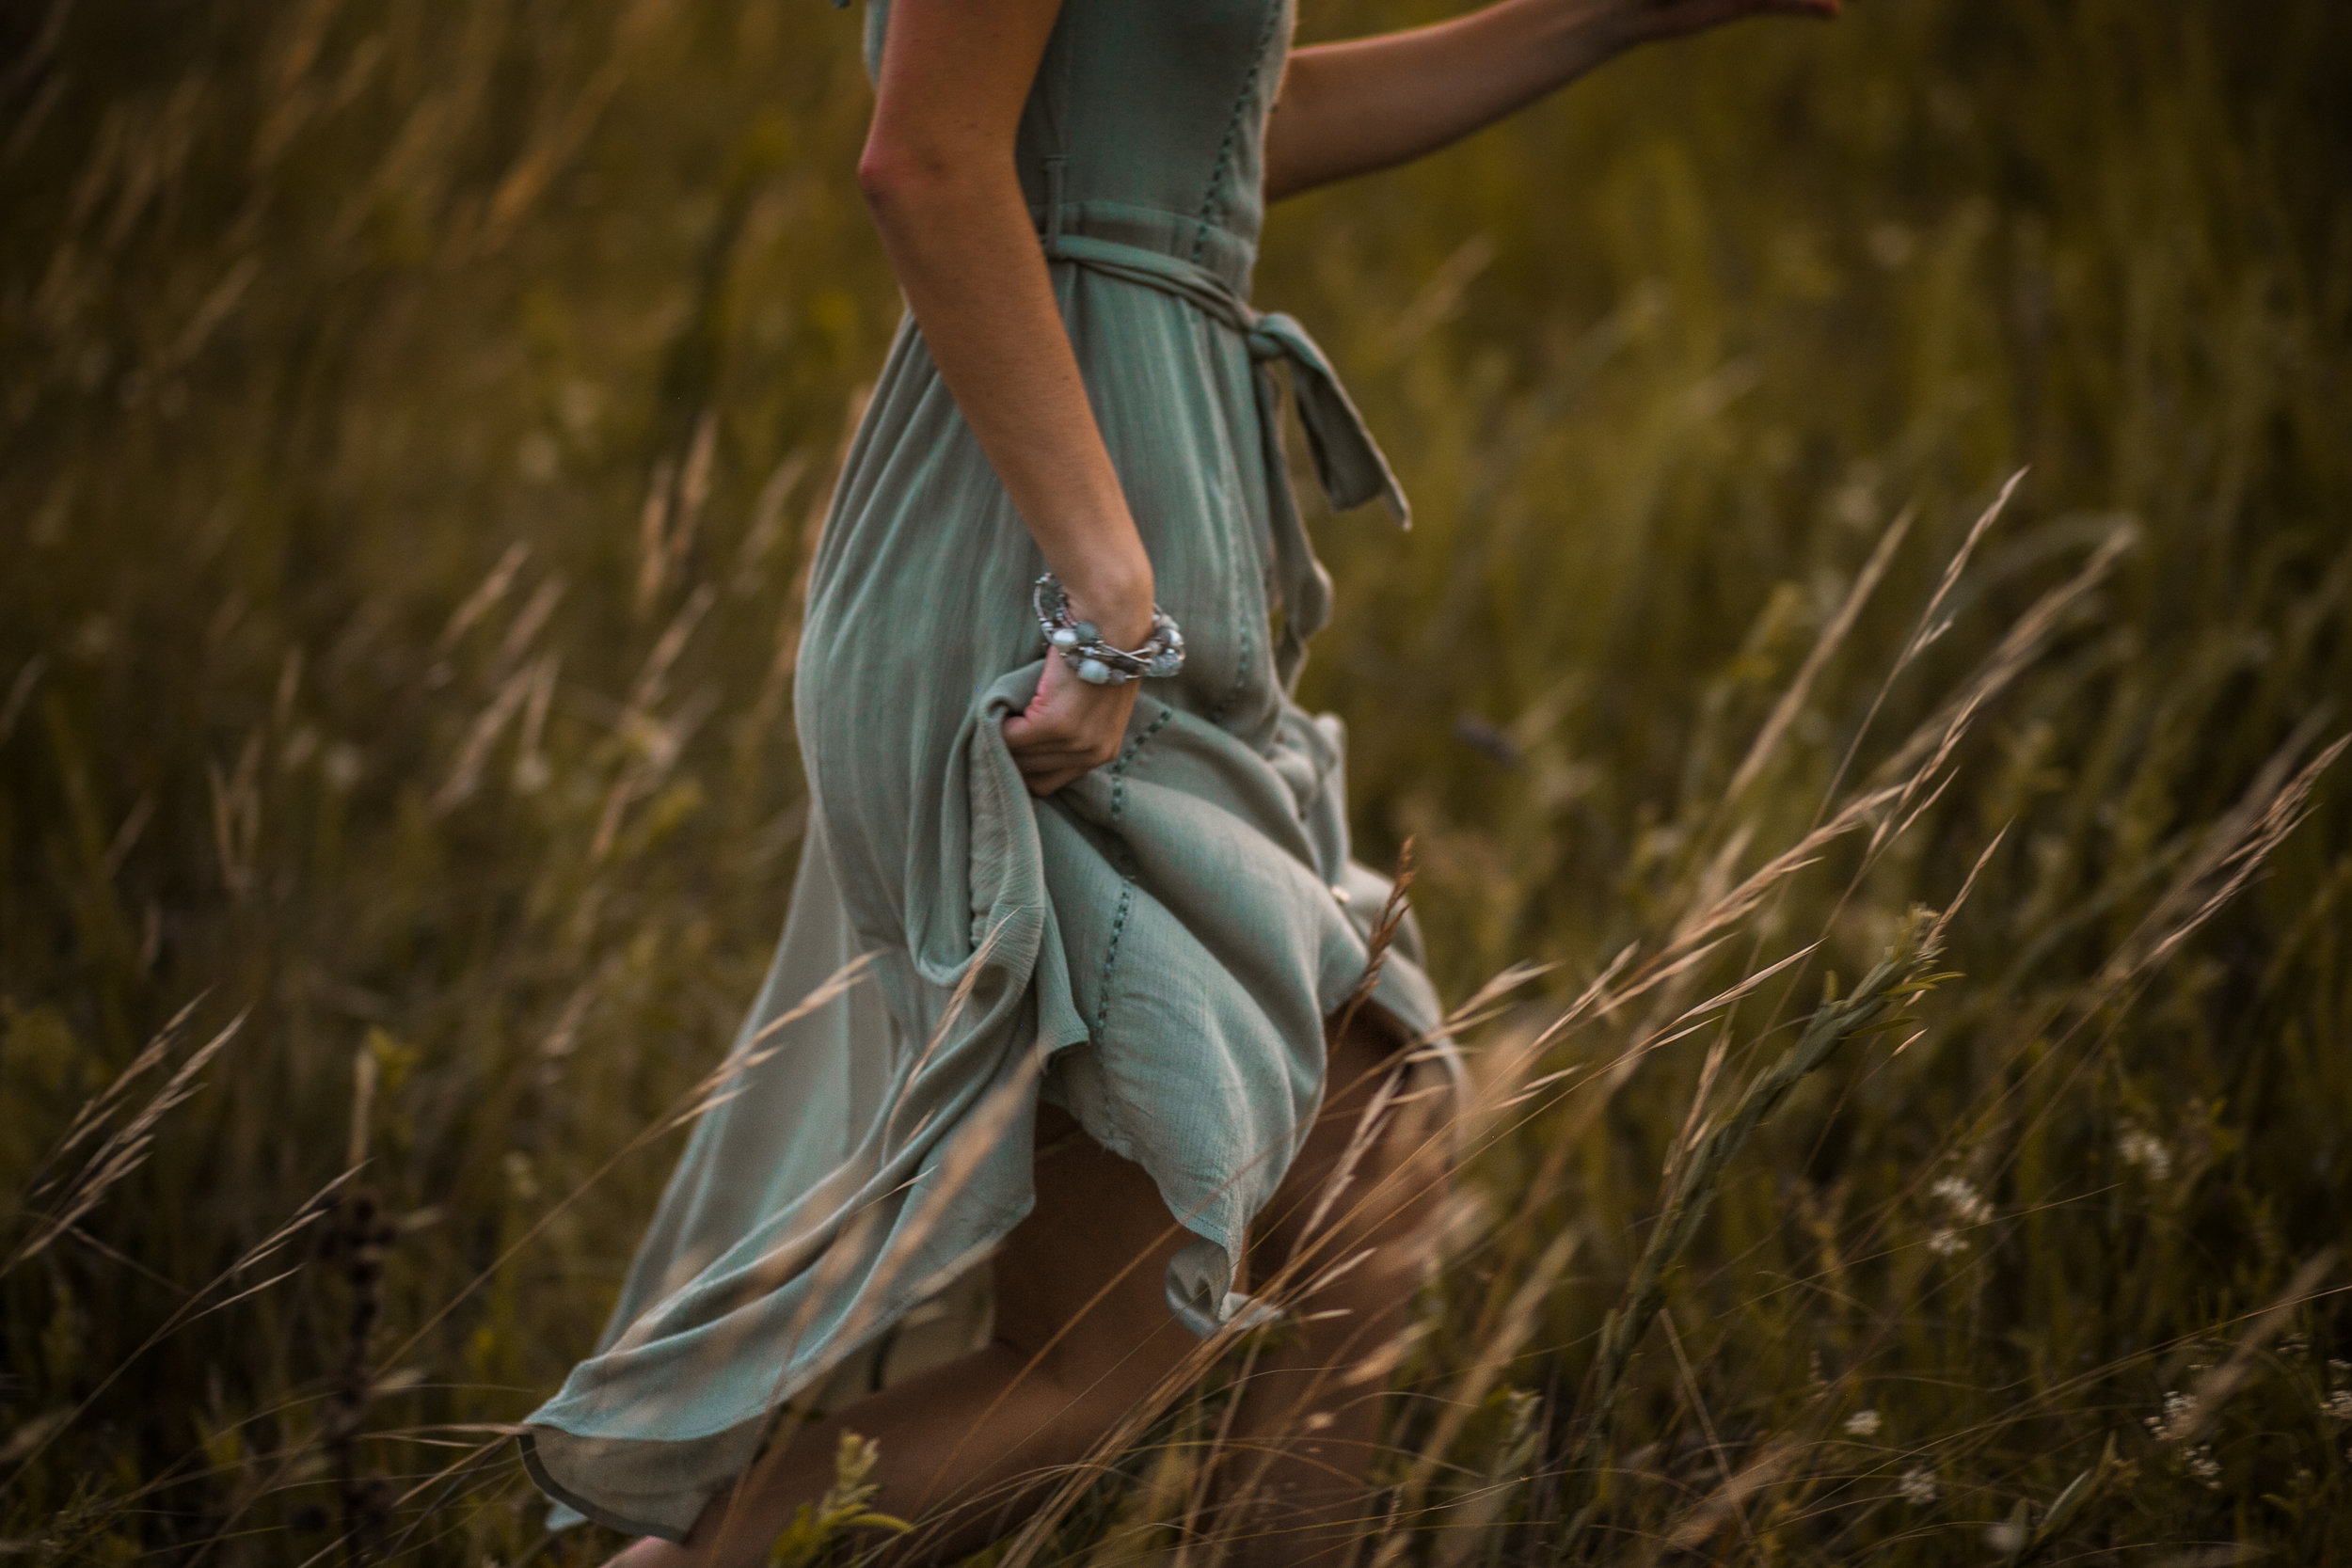 Hudson High School senior runs through a meadow during her photo session with Andrea Wagner in Stillwater MN